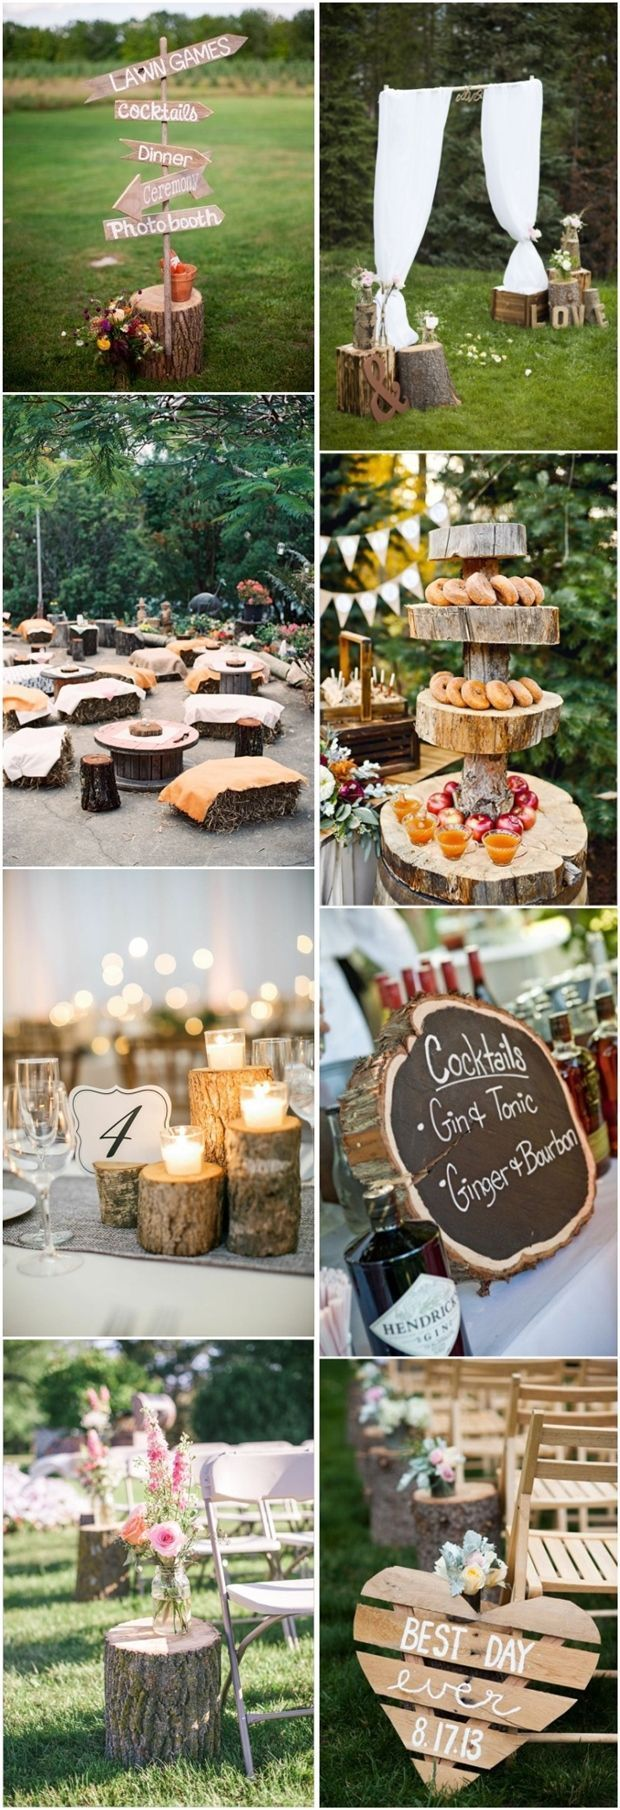 50+ Tree Stumps Wedding Ideas for Rustic Country Weddings